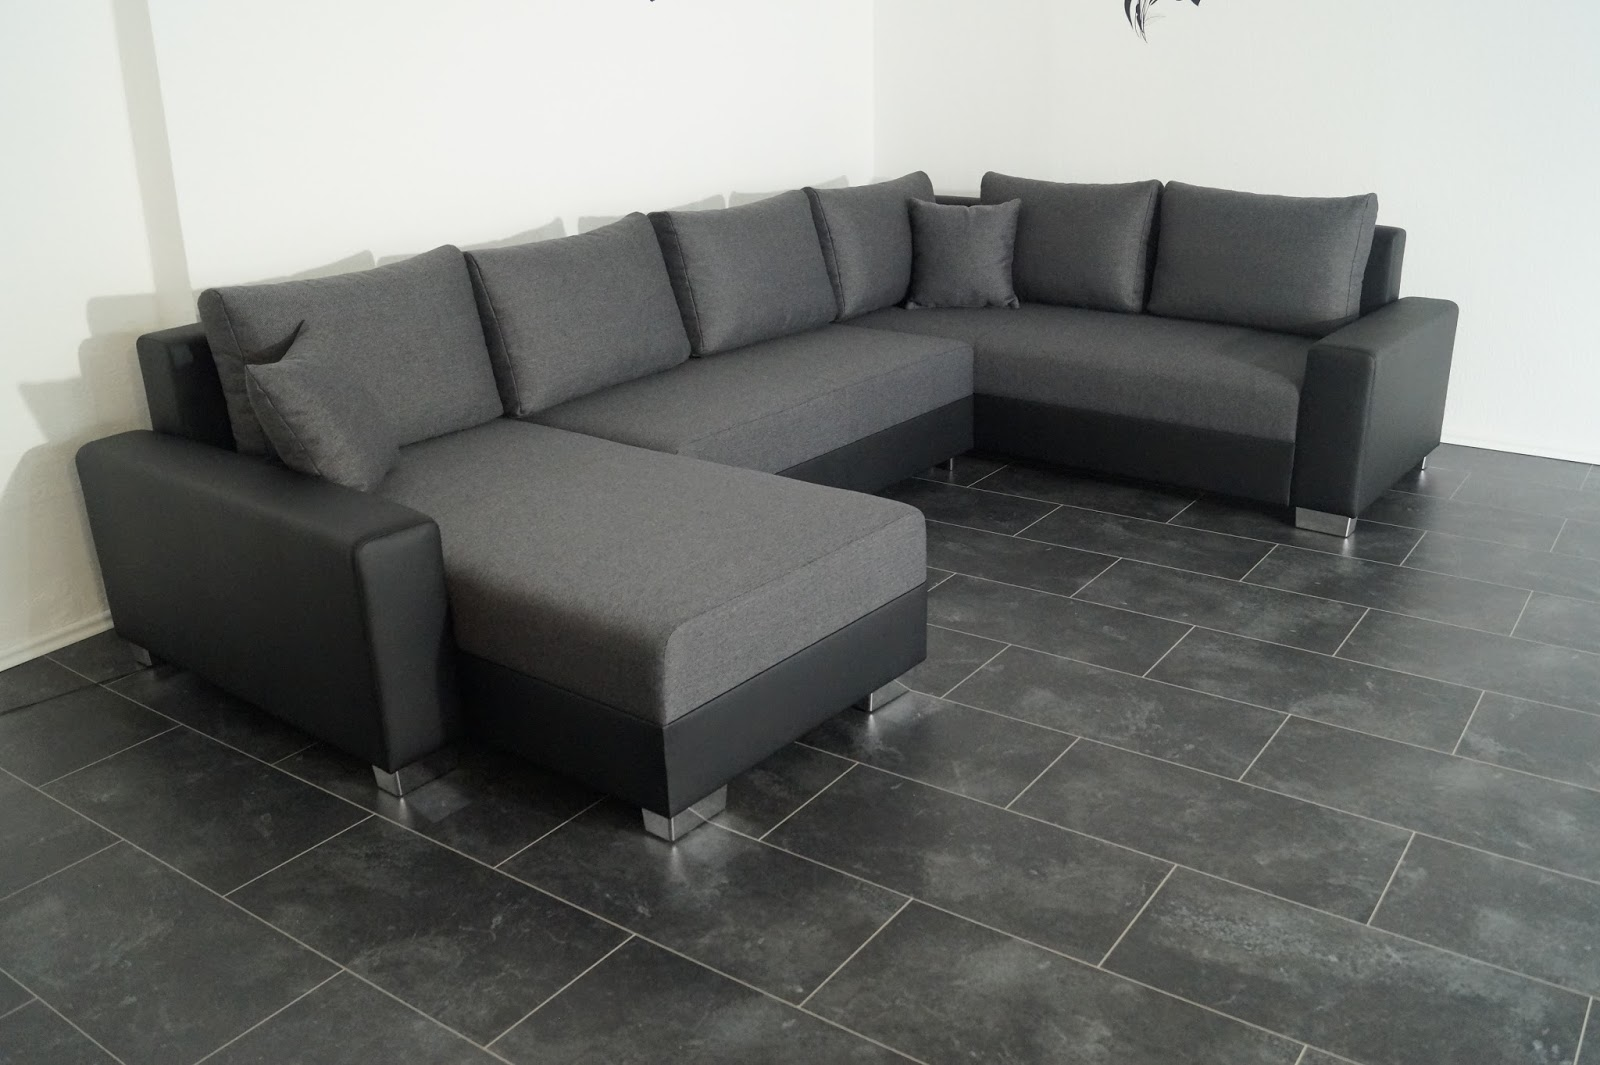 bettsofa schlafcouch sofa couch wohnlandschaft polsterecke bettfunktion nr922. Black Bedroom Furniture Sets. Home Design Ideas